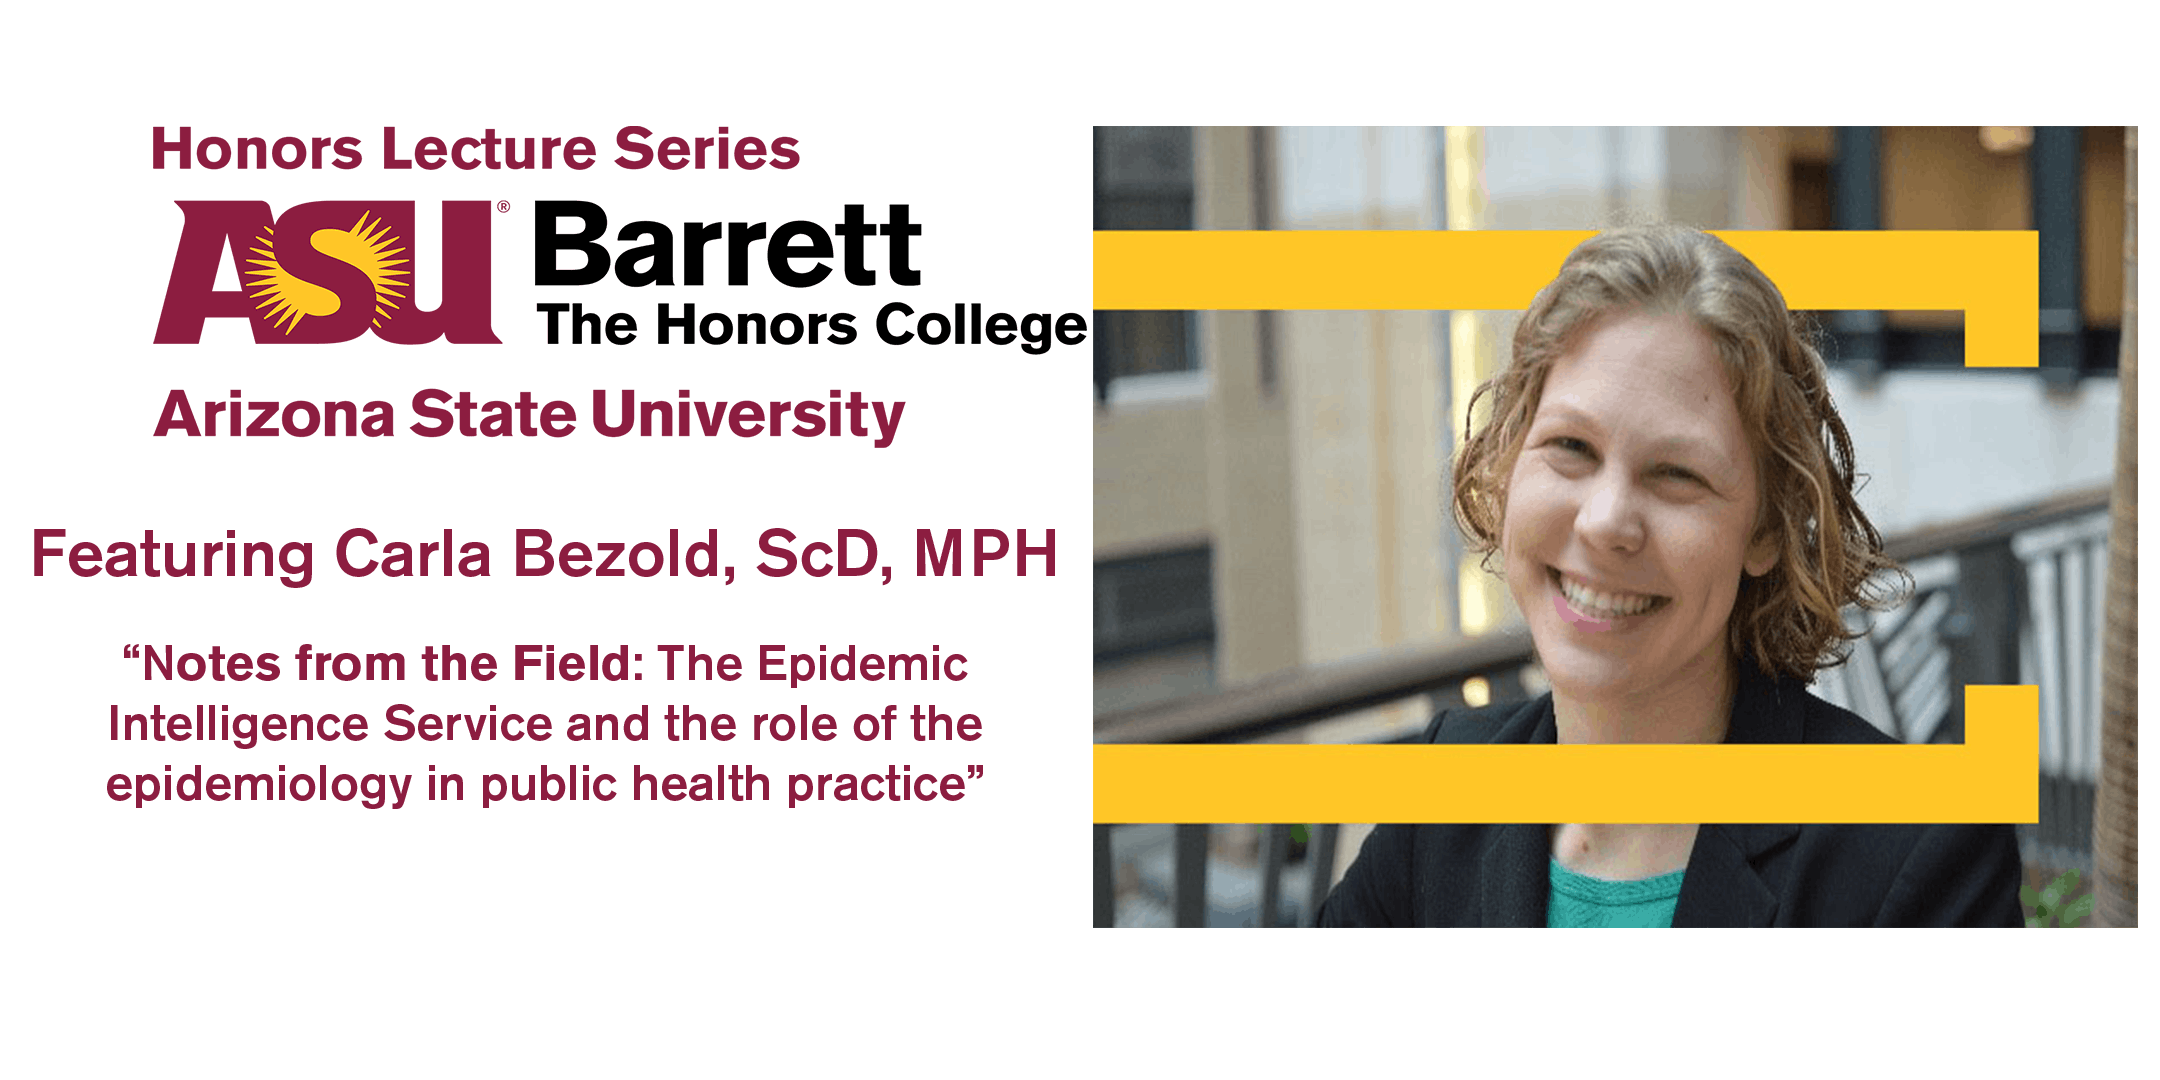 Honors Lecture Series: Carla Bezold